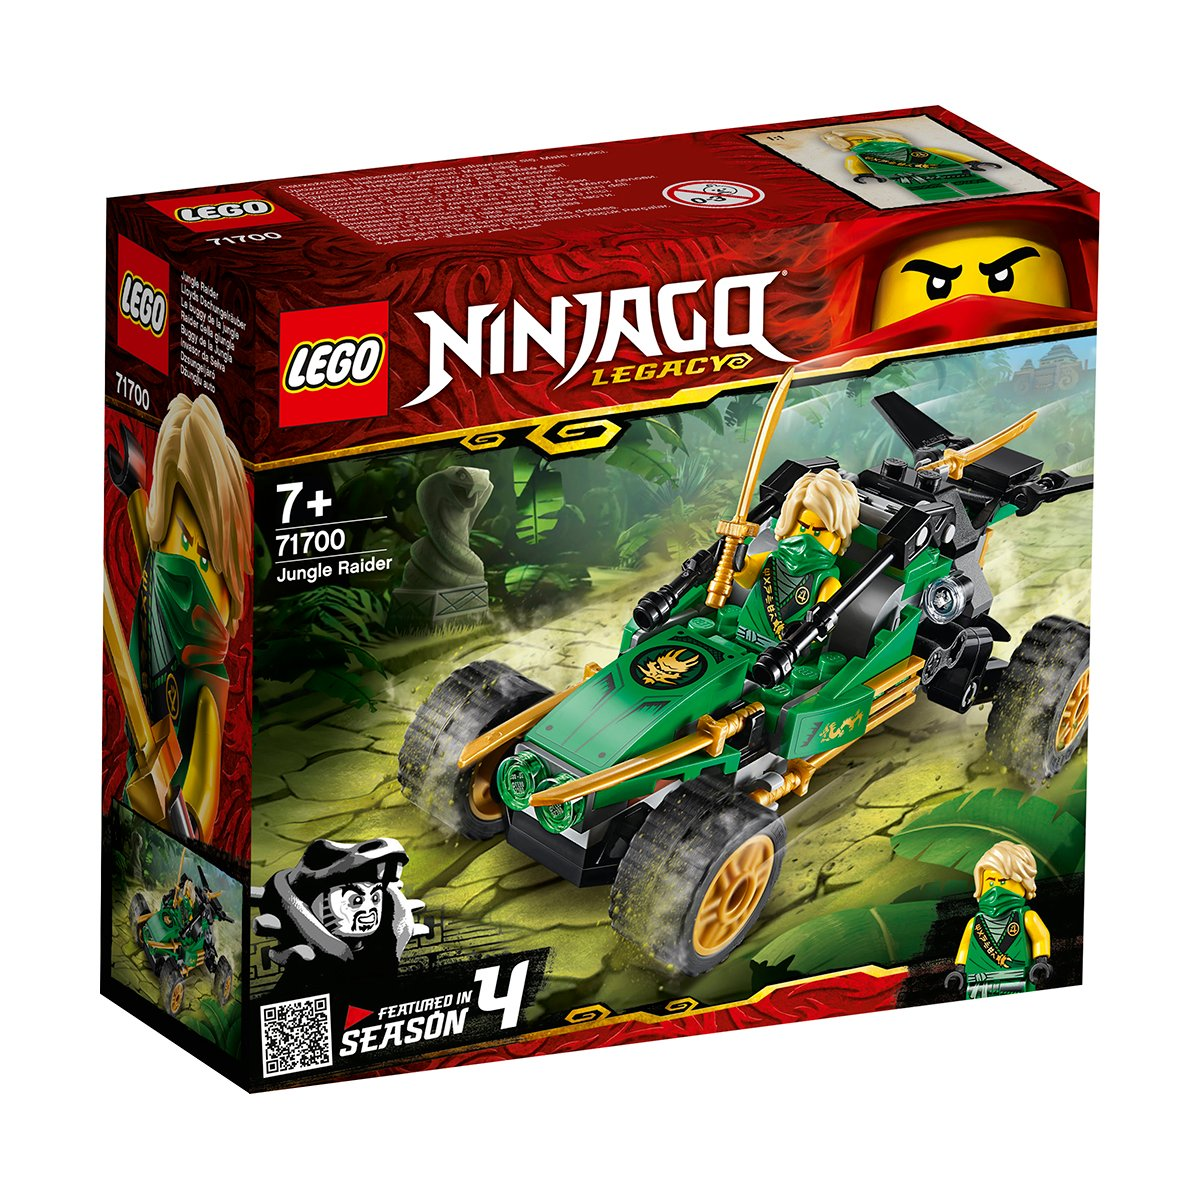 LEGO® Ninjago® - Jungle Rider (71700)